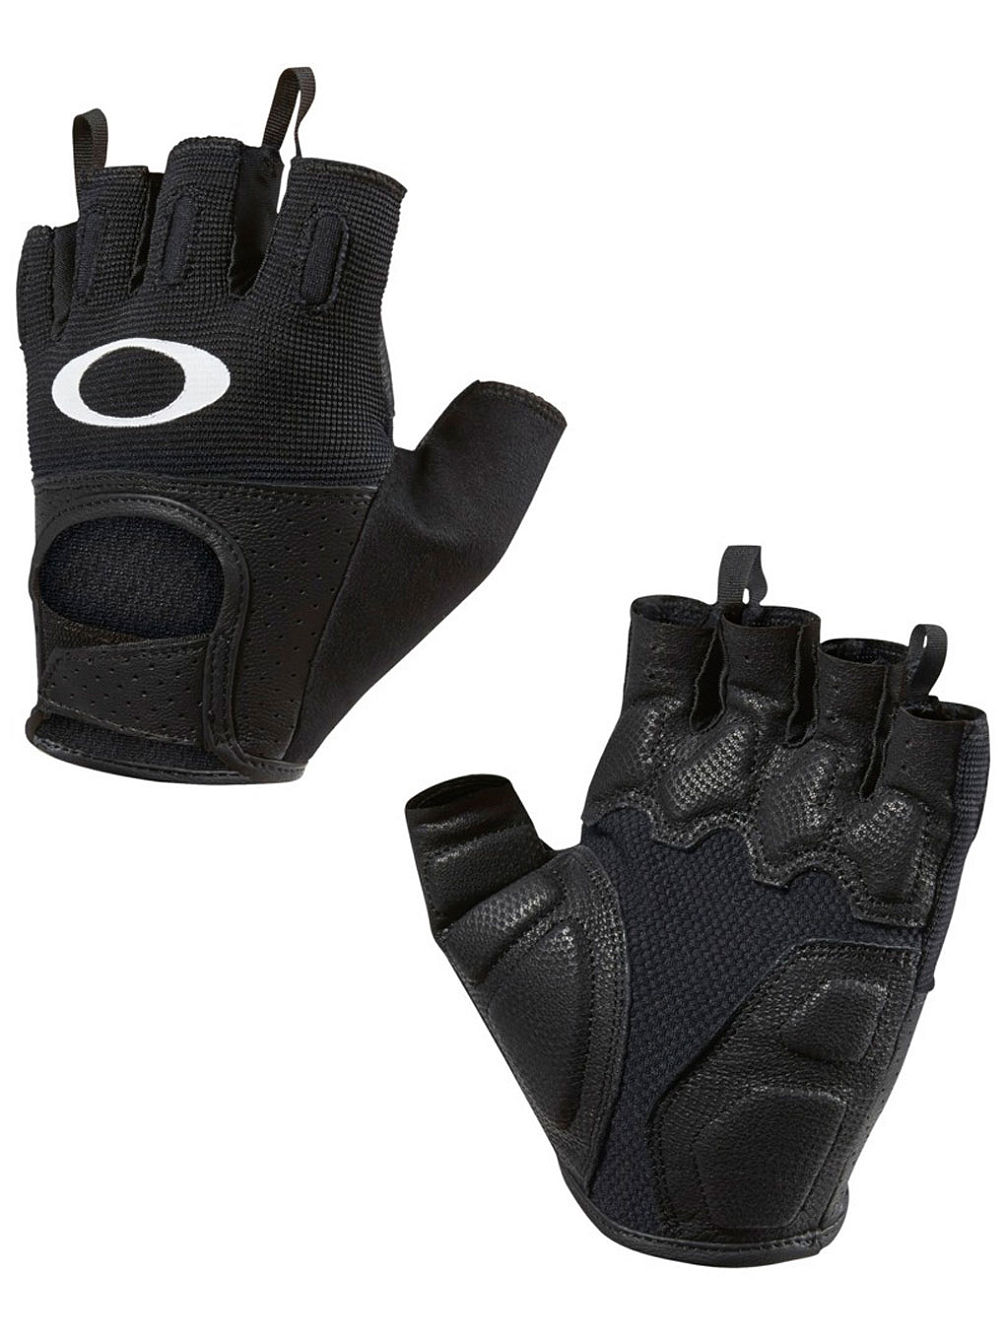 Factory Road 2.0 Bike Gloves